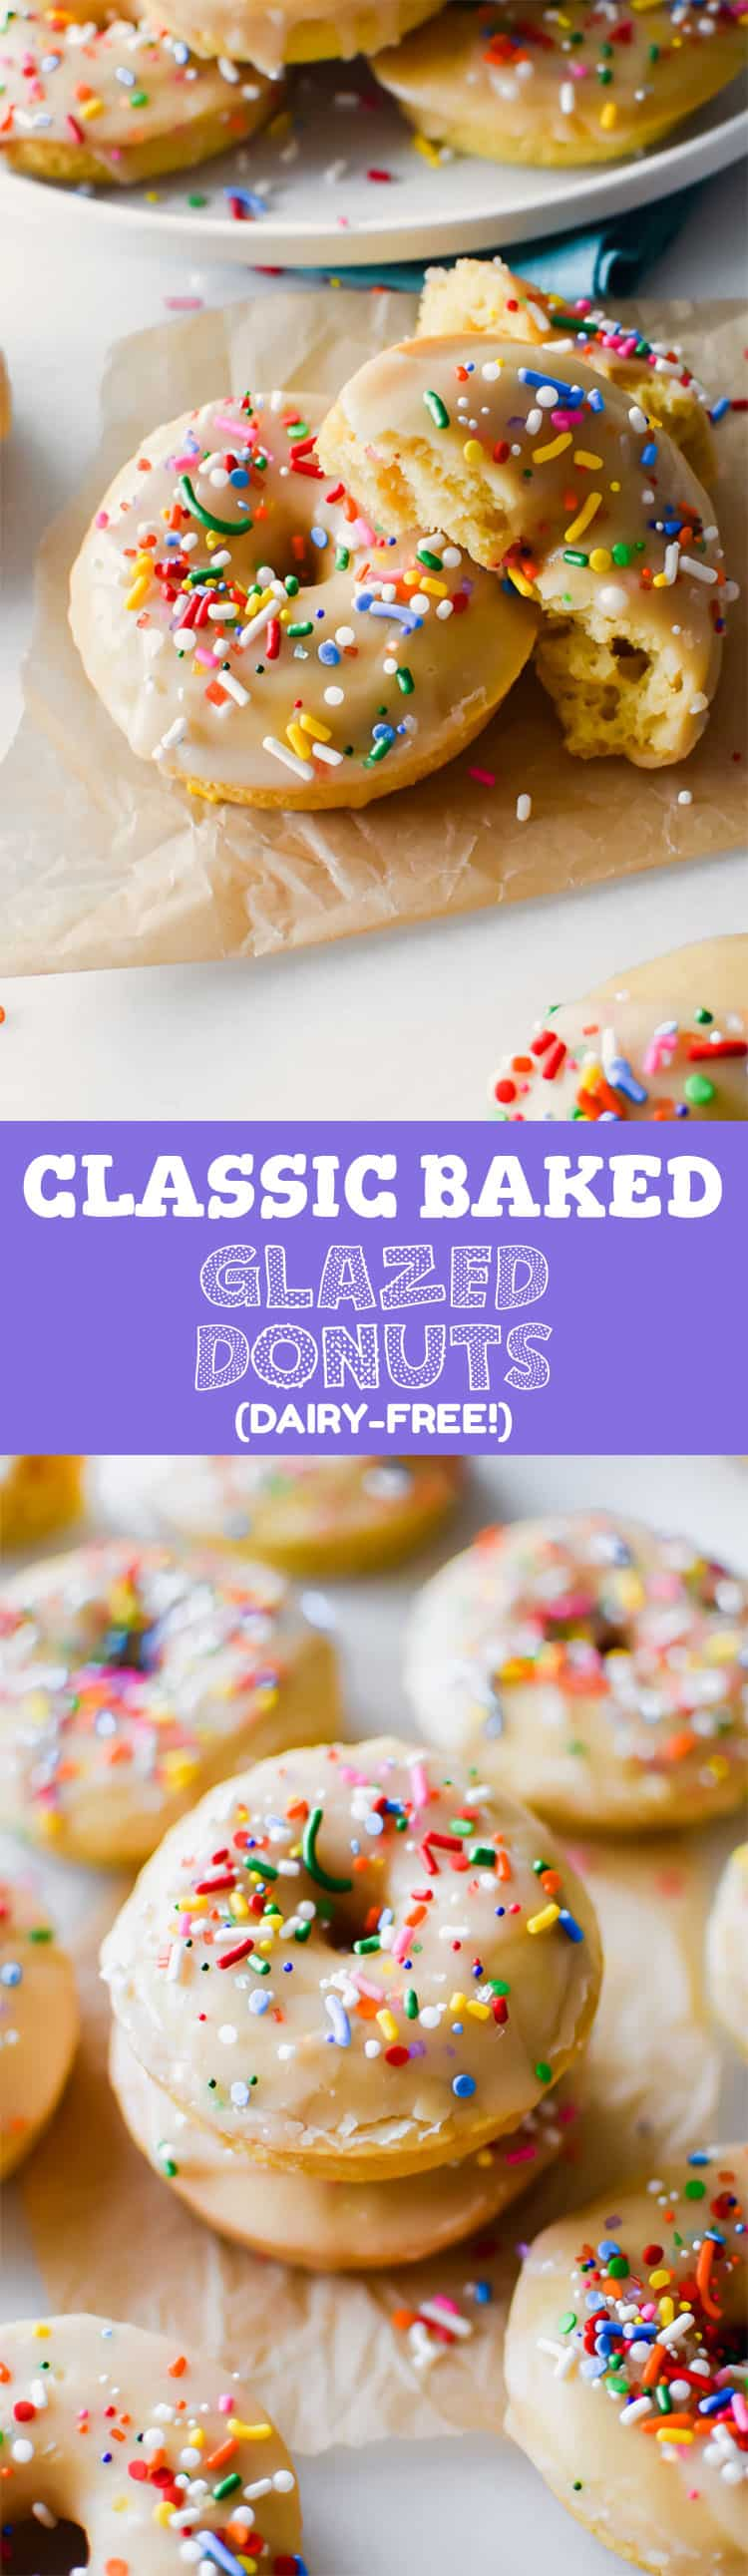 These classic glazed donuts are baked, not fried – plus super simple to make! Get the recipe at runlifteatrepeat.com!